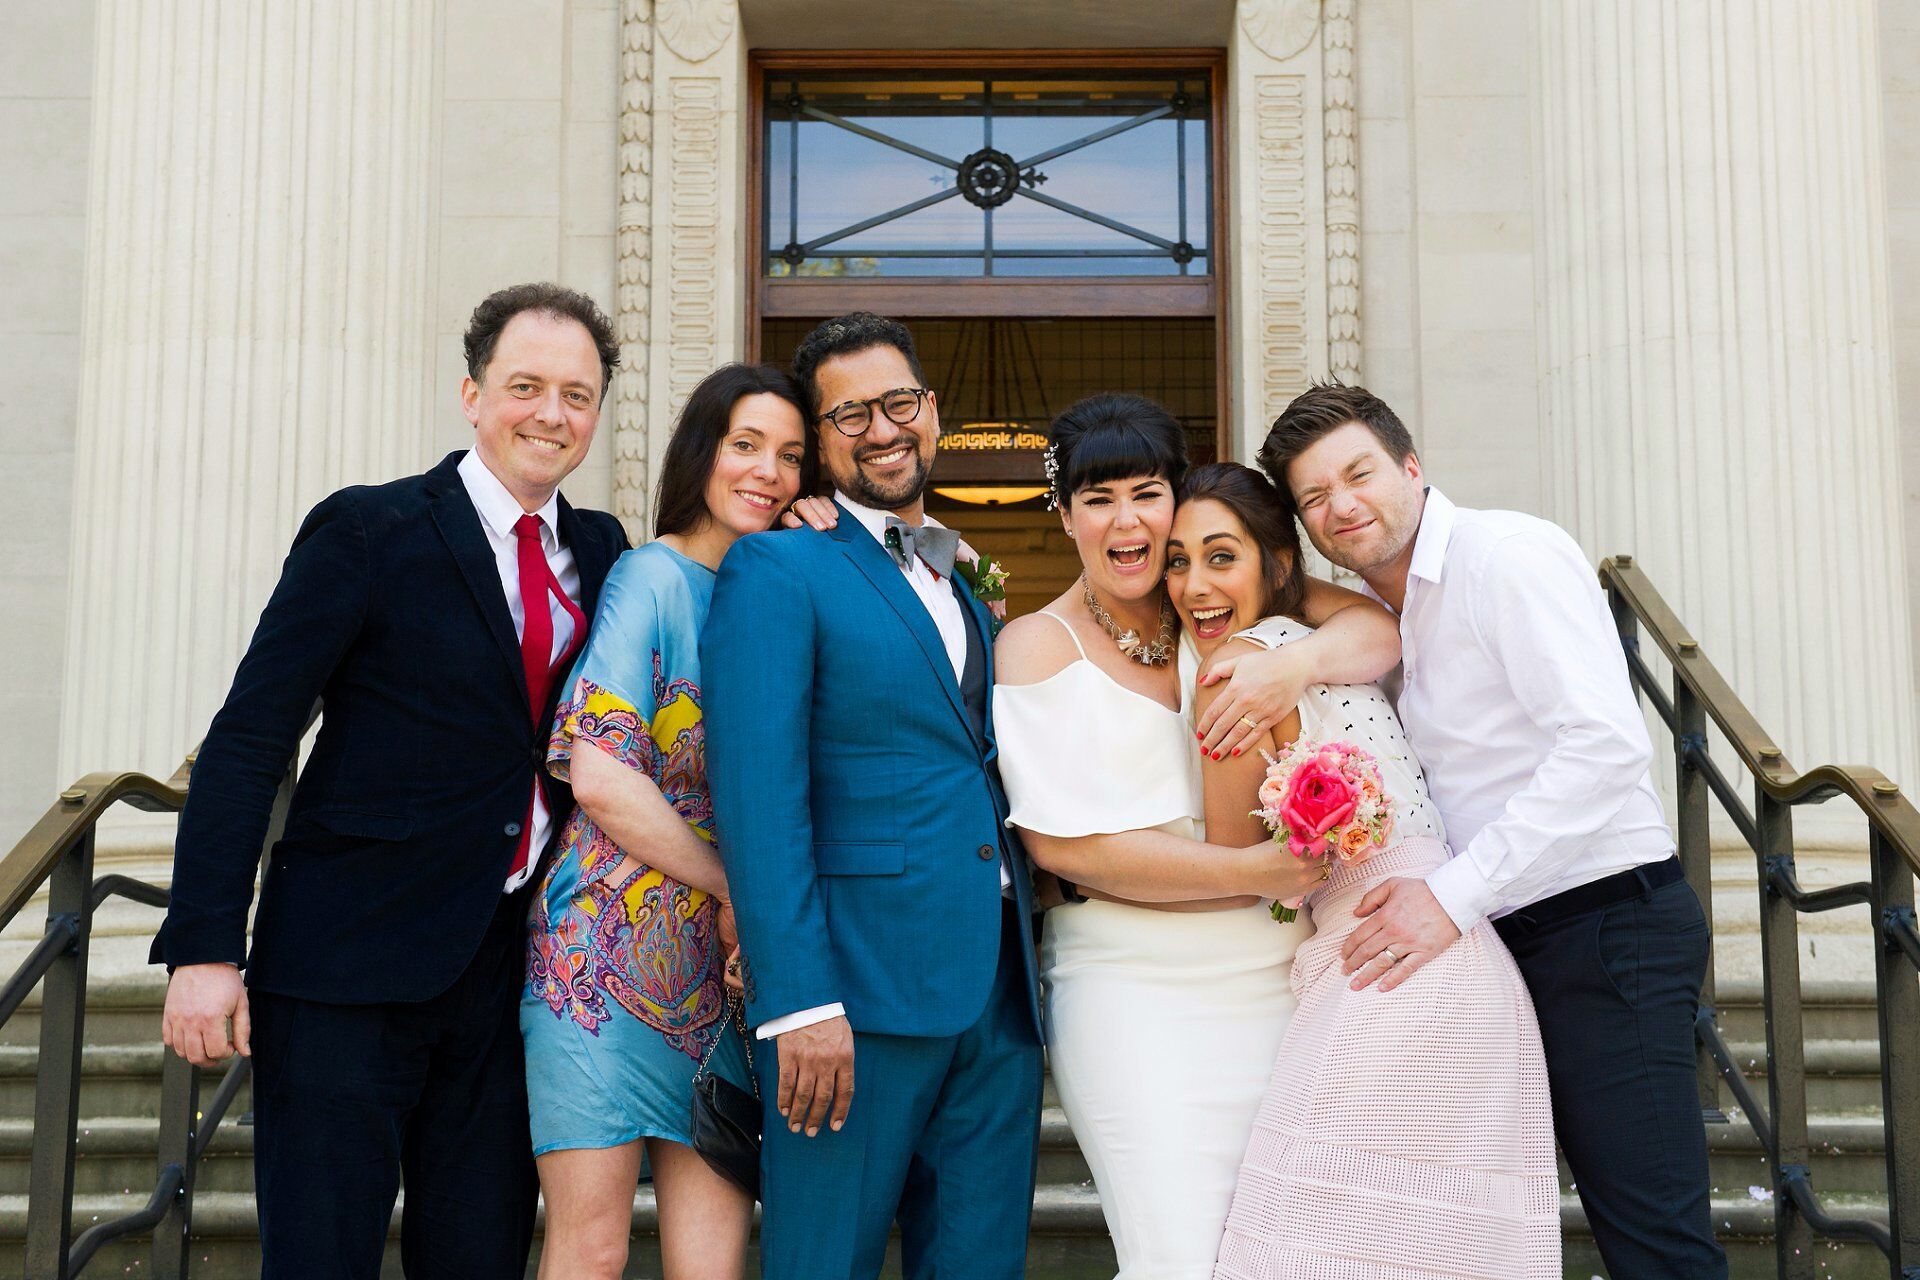 bride and groom and friends on the steps outside old marylebone town hall after their marylebone room ceremony